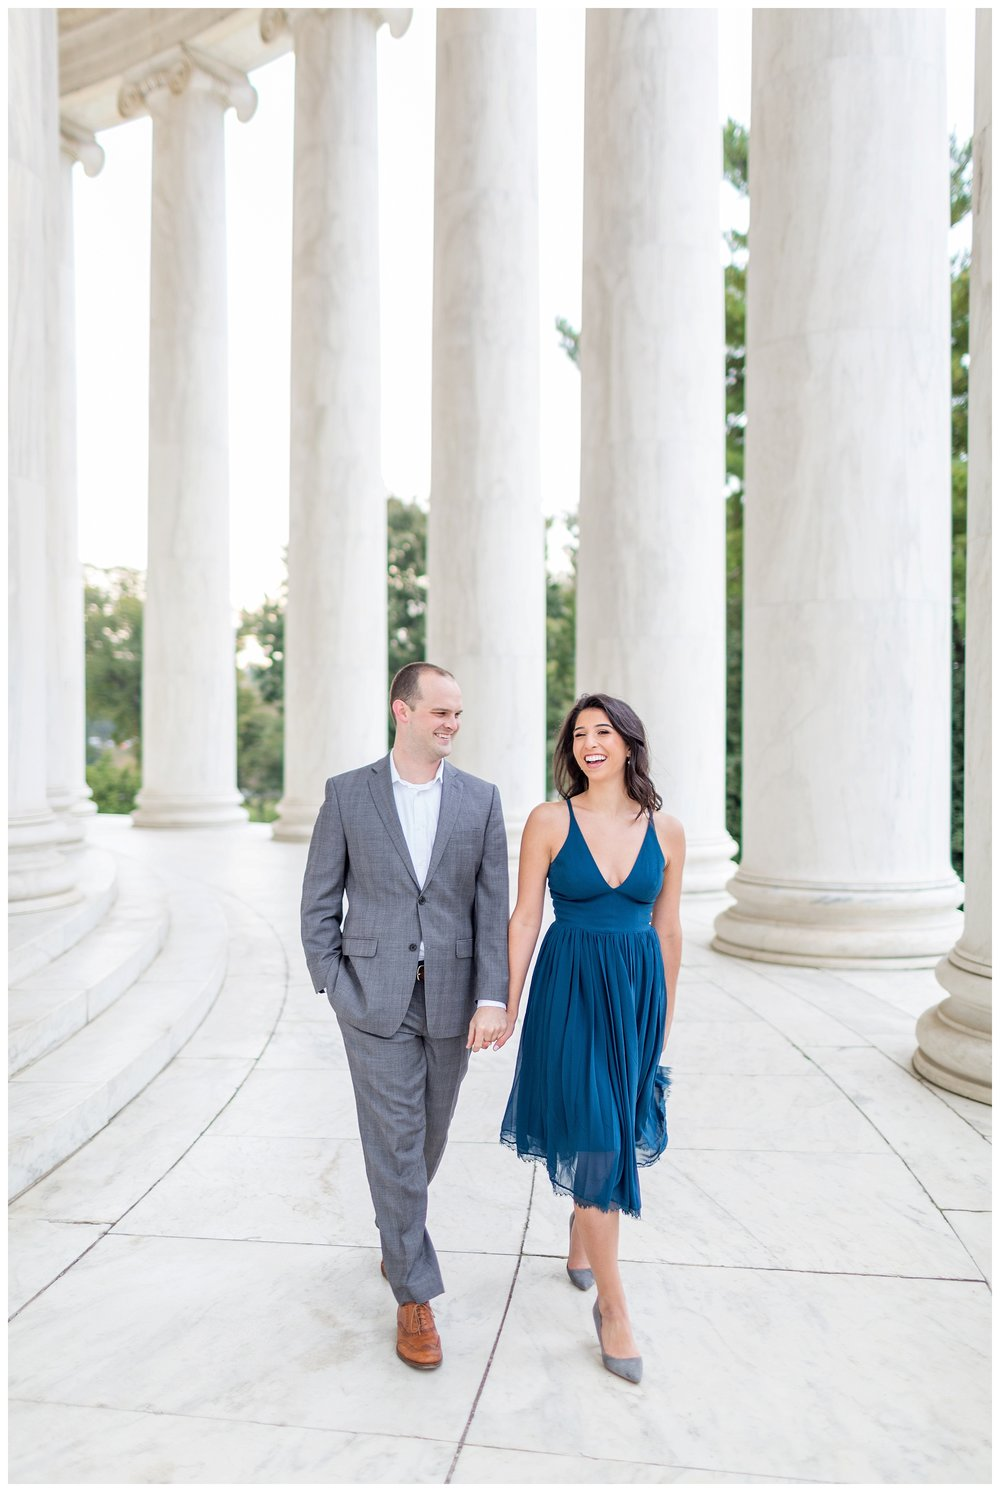 Washington DC Engagement Photos Kir Tuben_0019.jpg